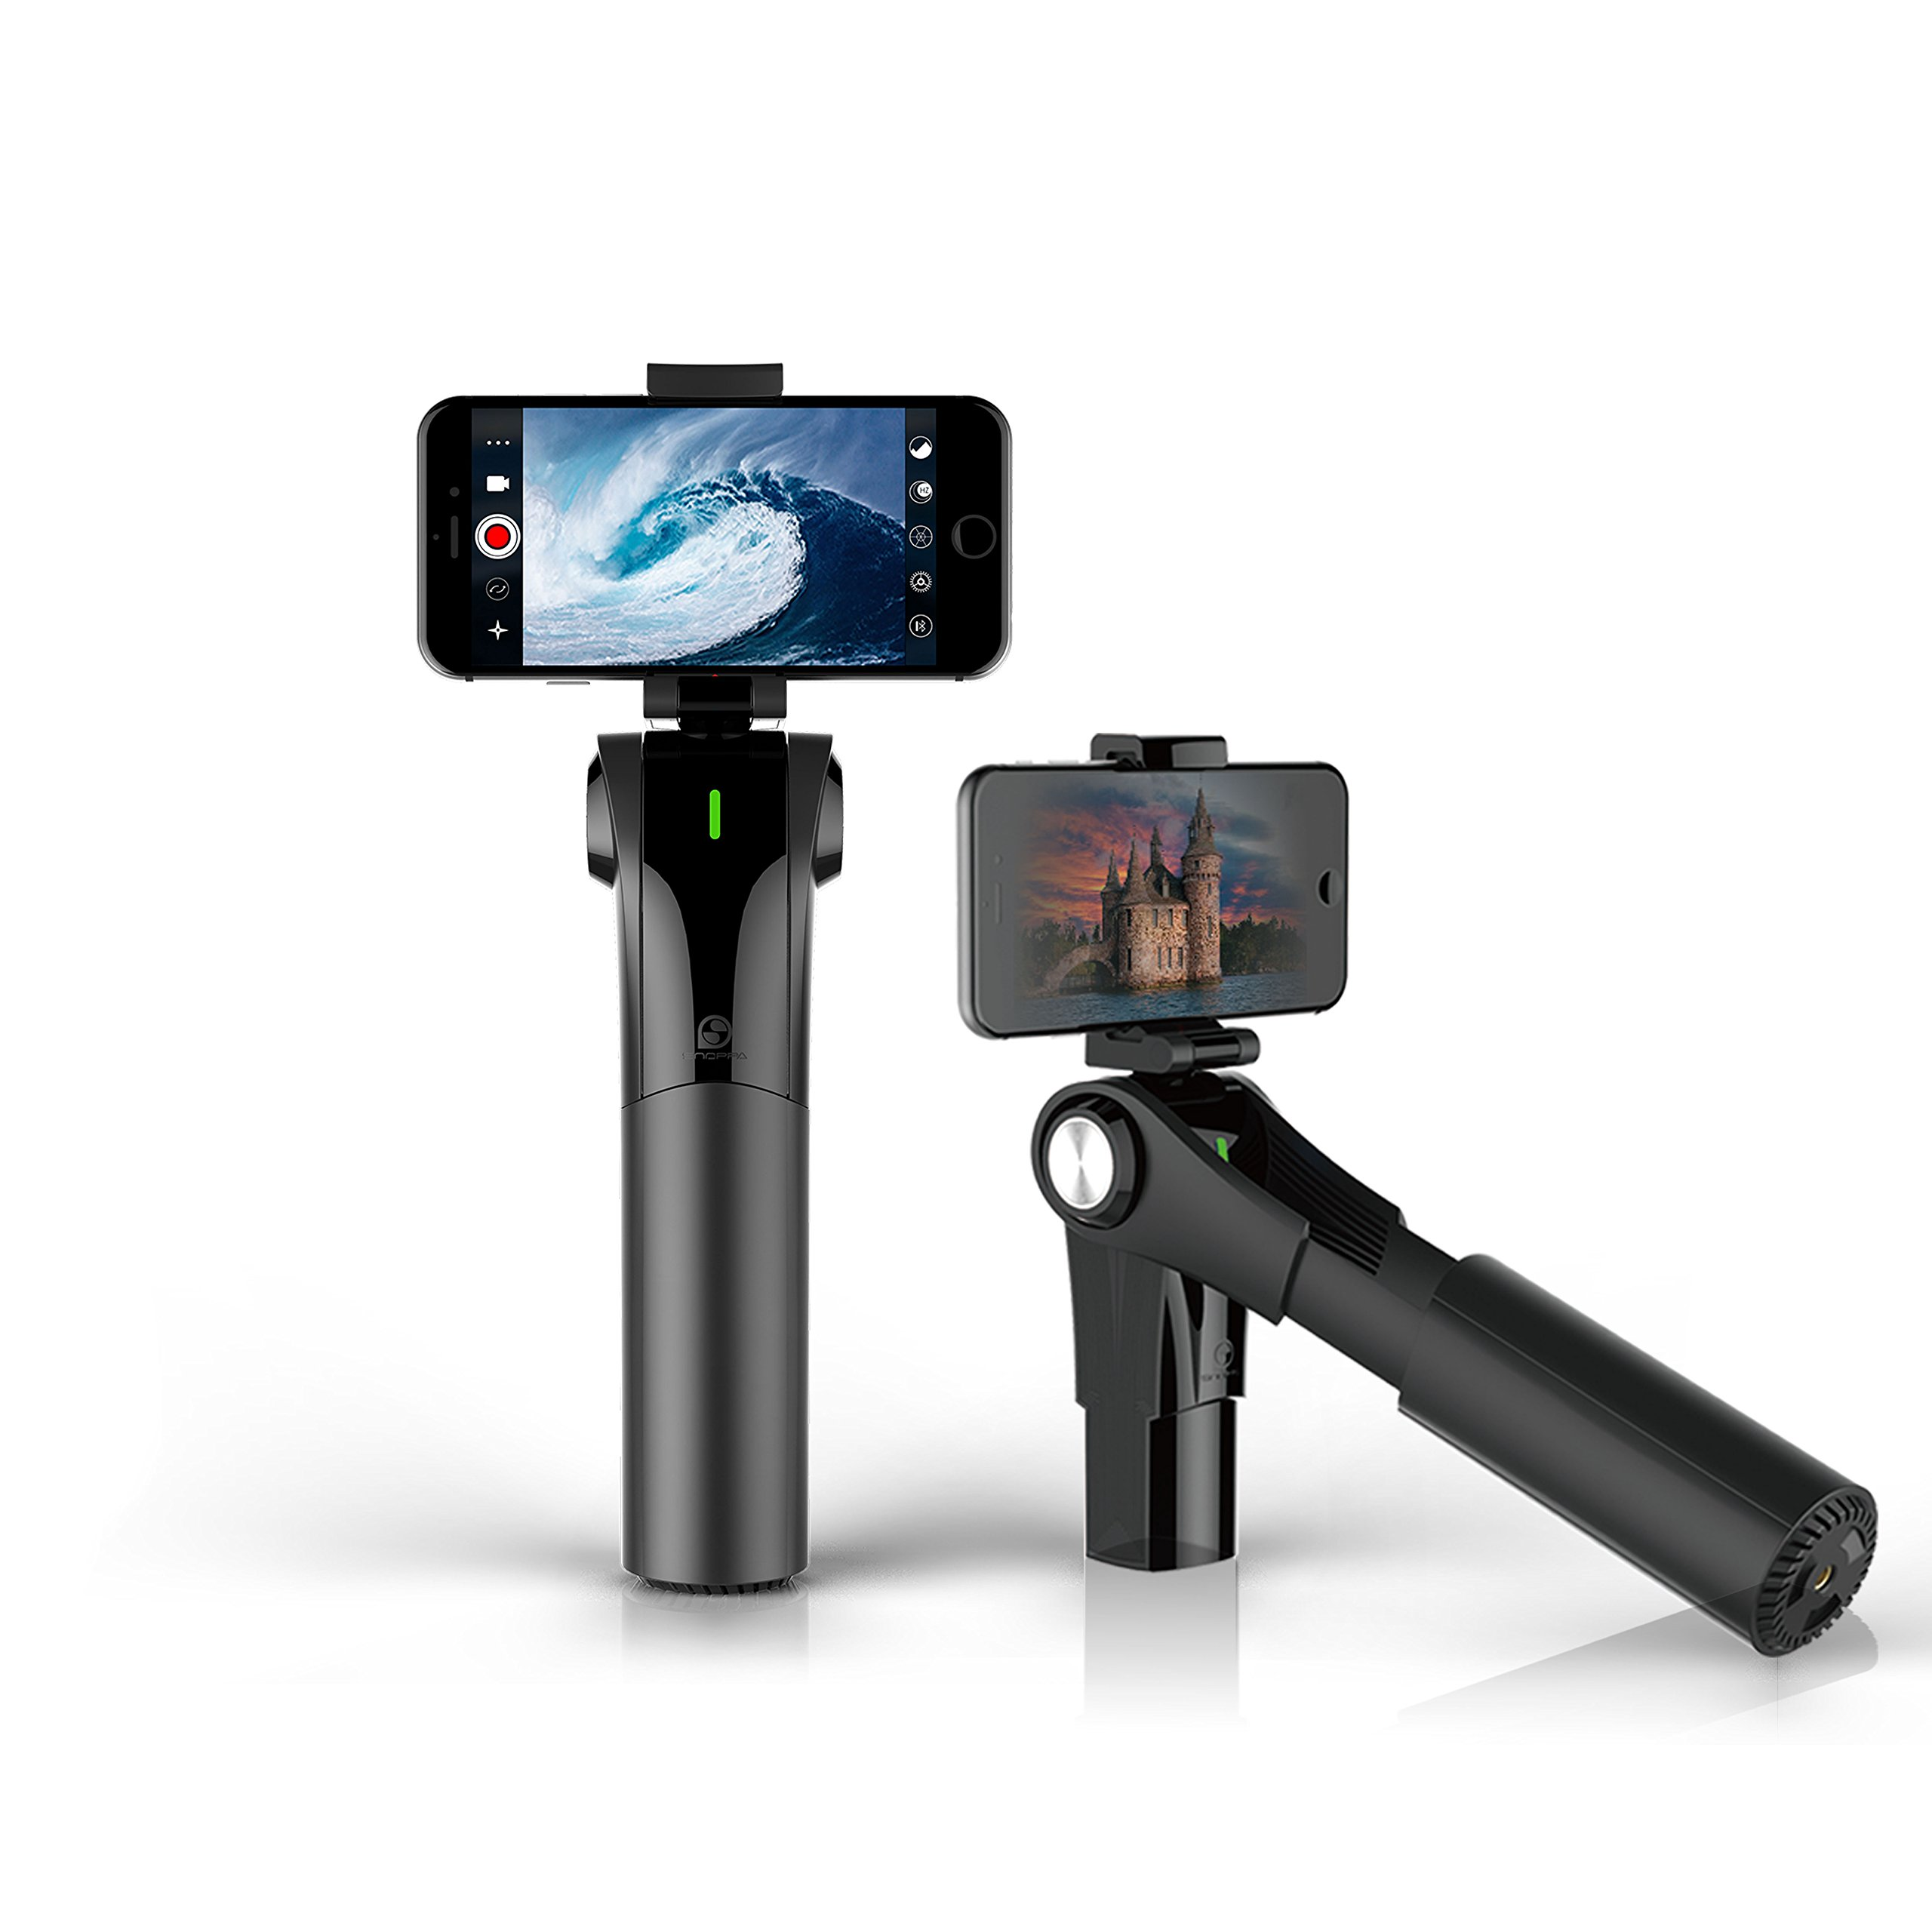 Snoppa M1 3 Axis Handheld Gimbal Stabilizer with APP Feature and 4 Working Modes for Smartphone and iPhone and Android Including iPhone X 8 Plus 7 6 Samsung Galaxy S9 S8 S7 S6